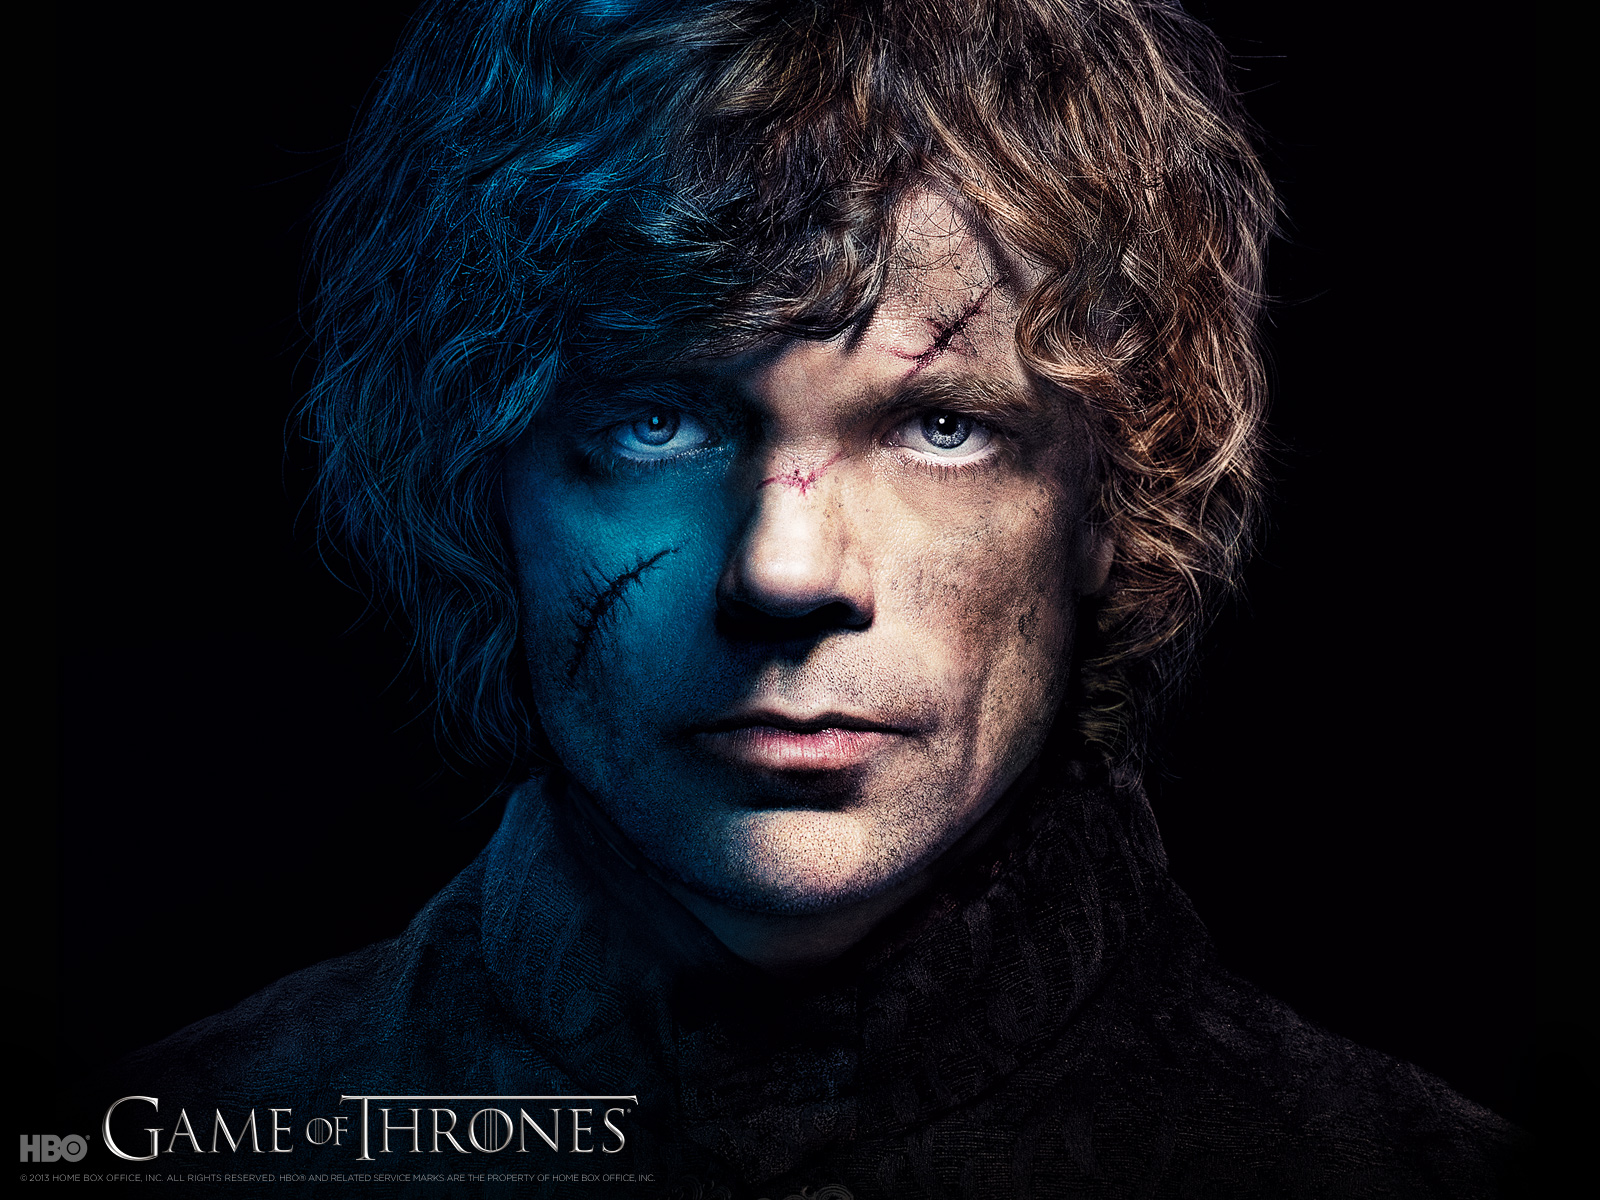 Game Of Thrones Season 3: Inside The Wildlings